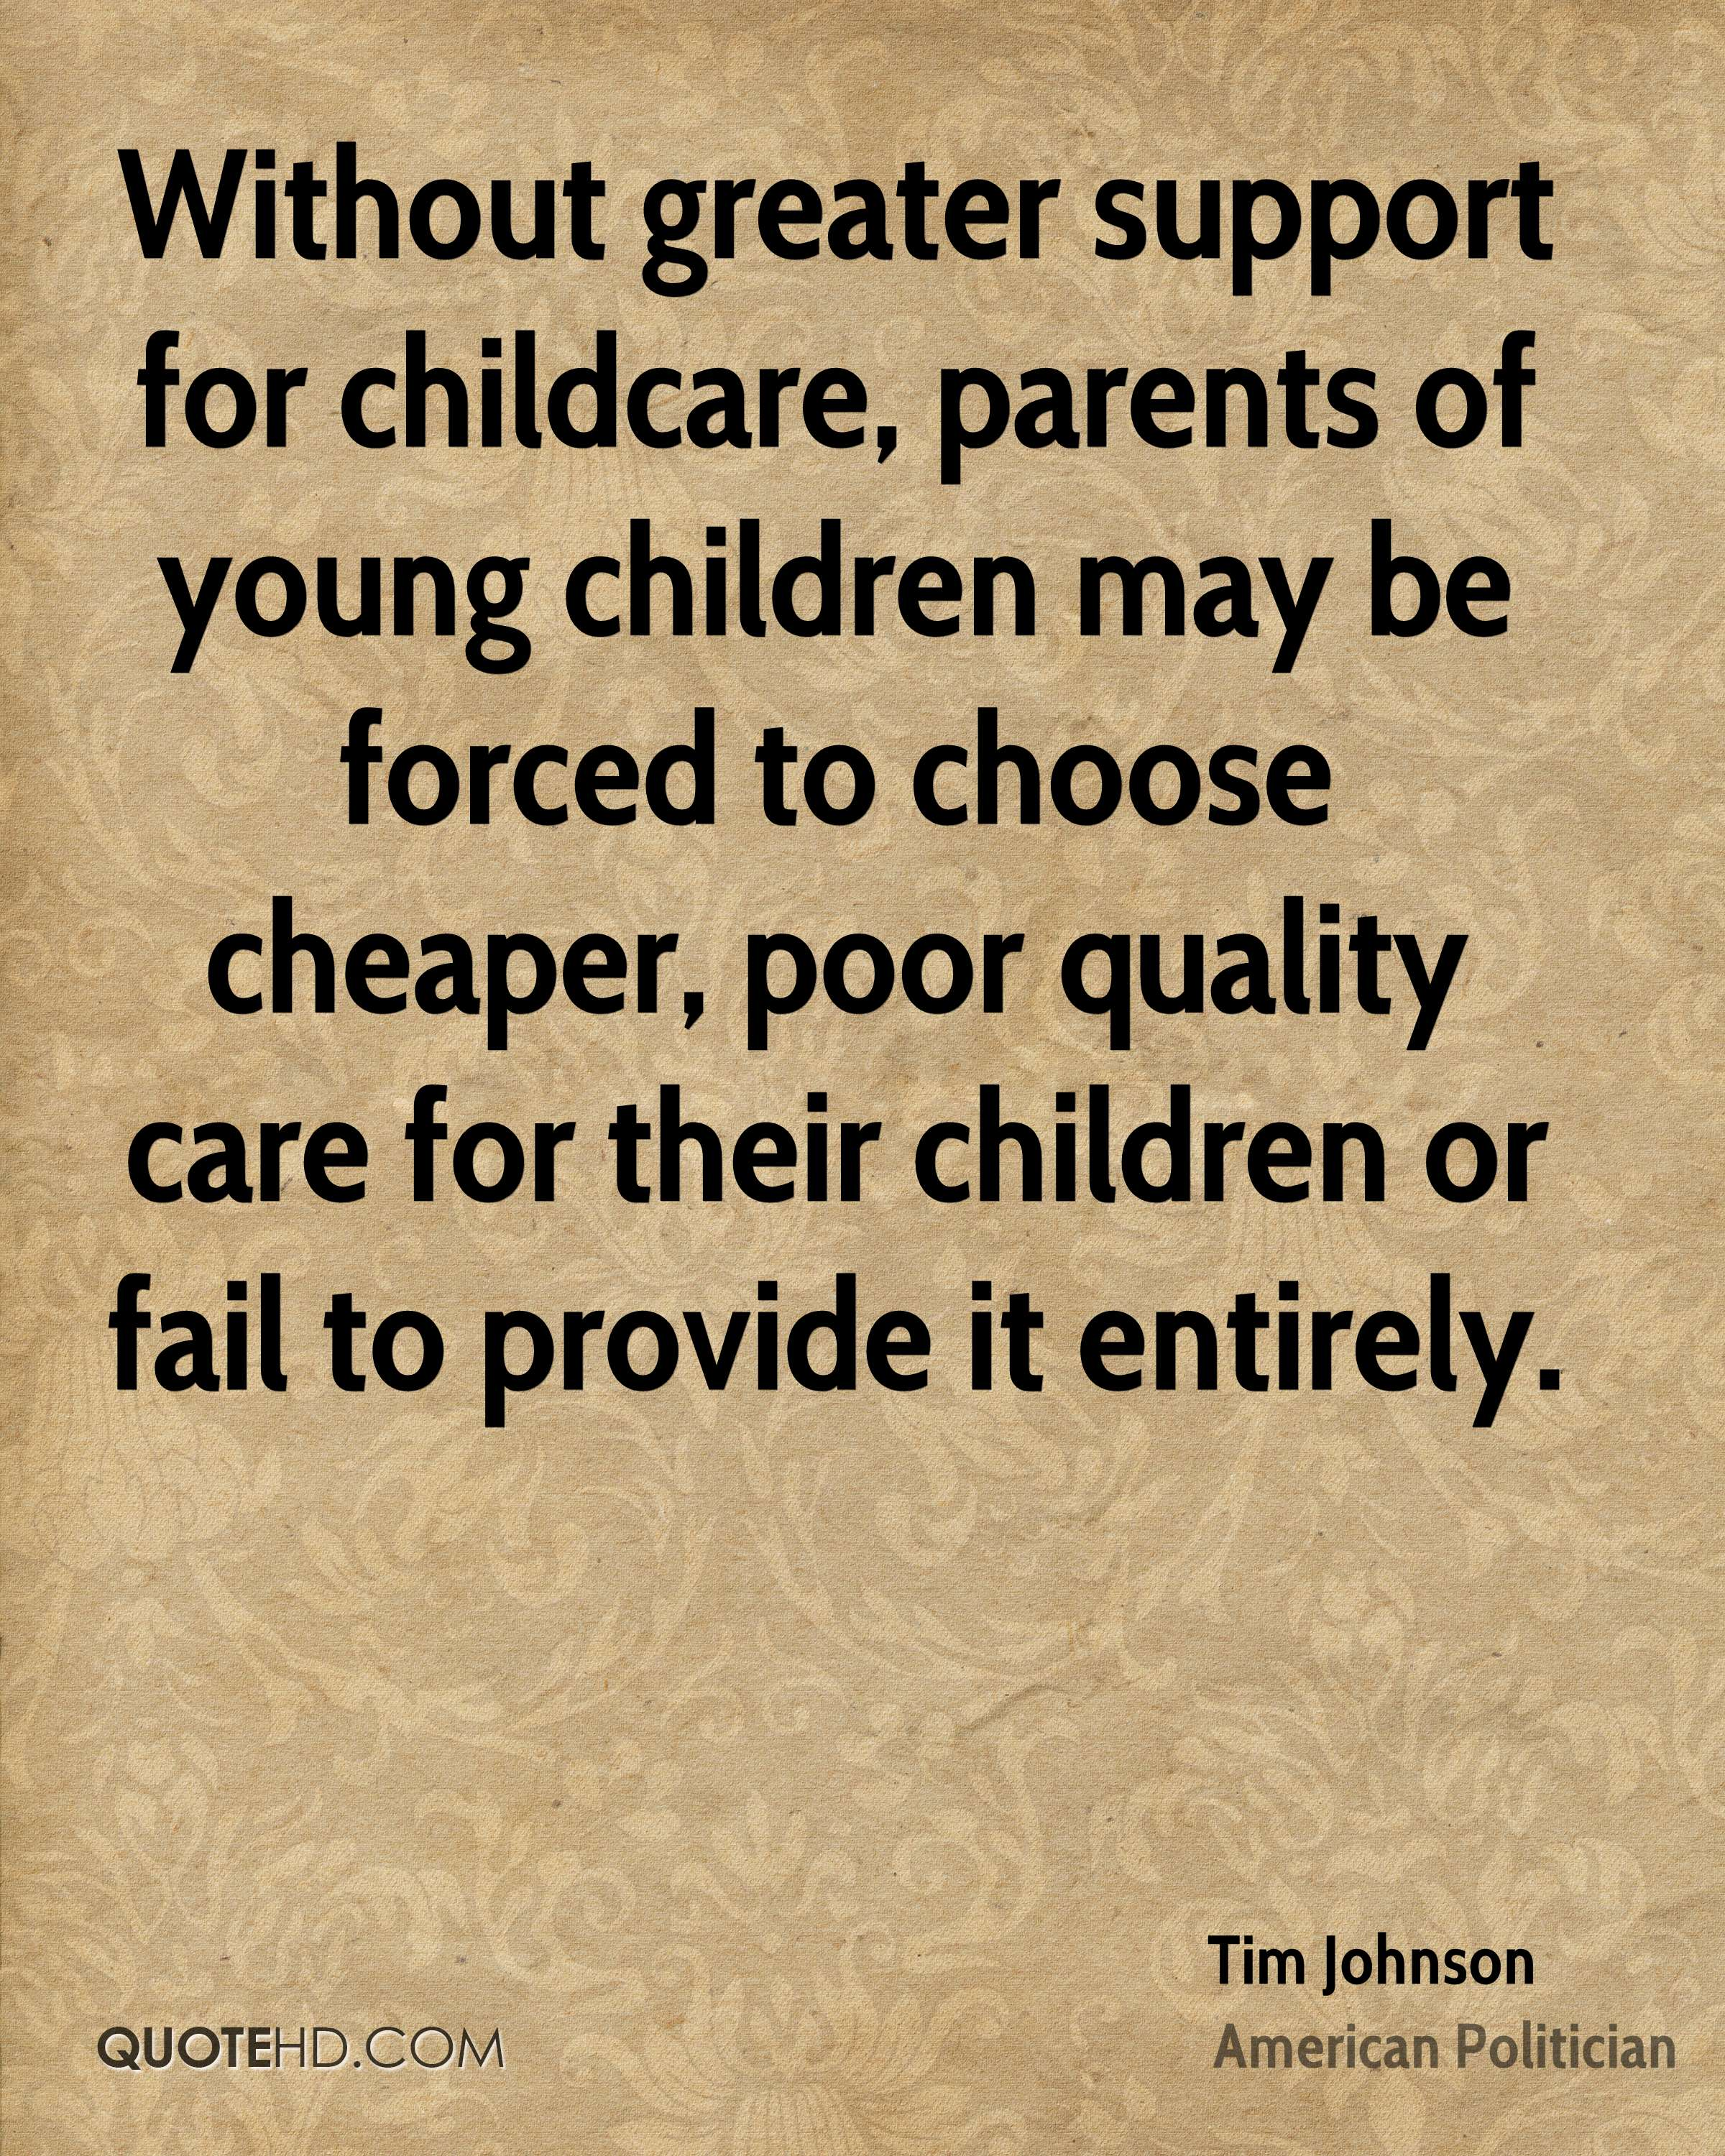 Childcare Quotes Impressive Tim Johnson Quotes  Quotehd